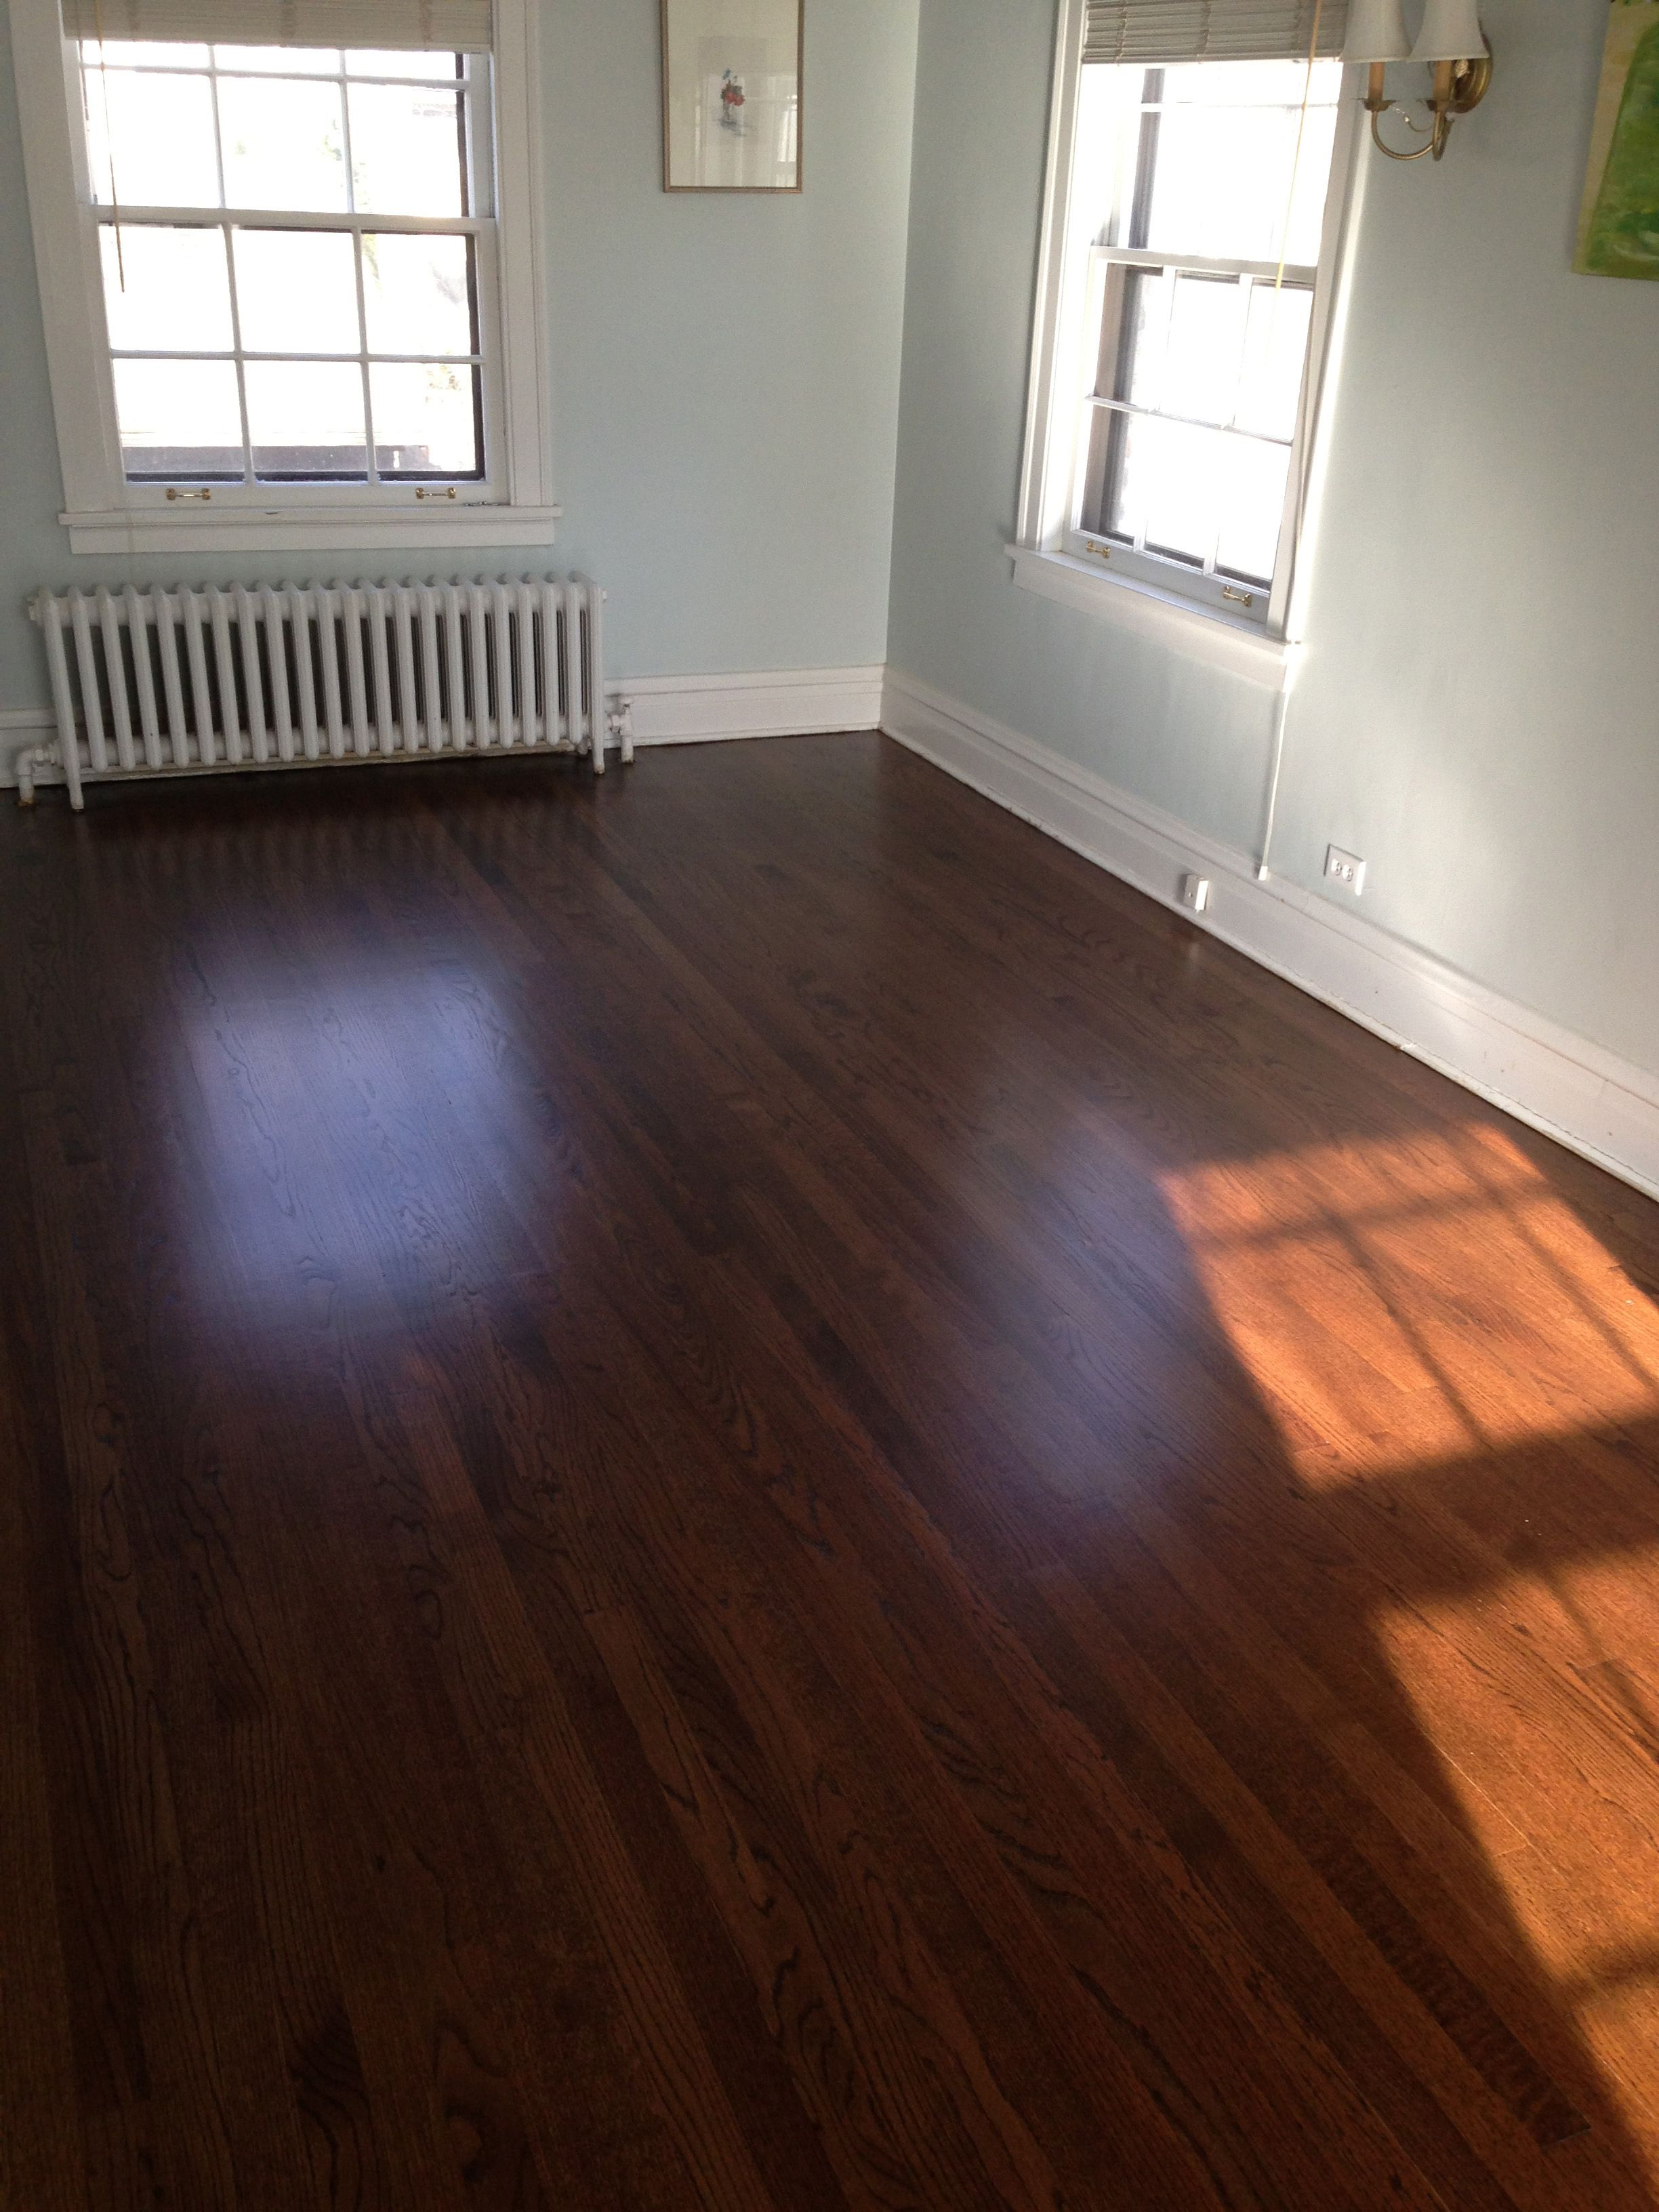 wood floor stain. Red Oak Floor With A Rich \u201cDark Walnut\u201d Stain Wood